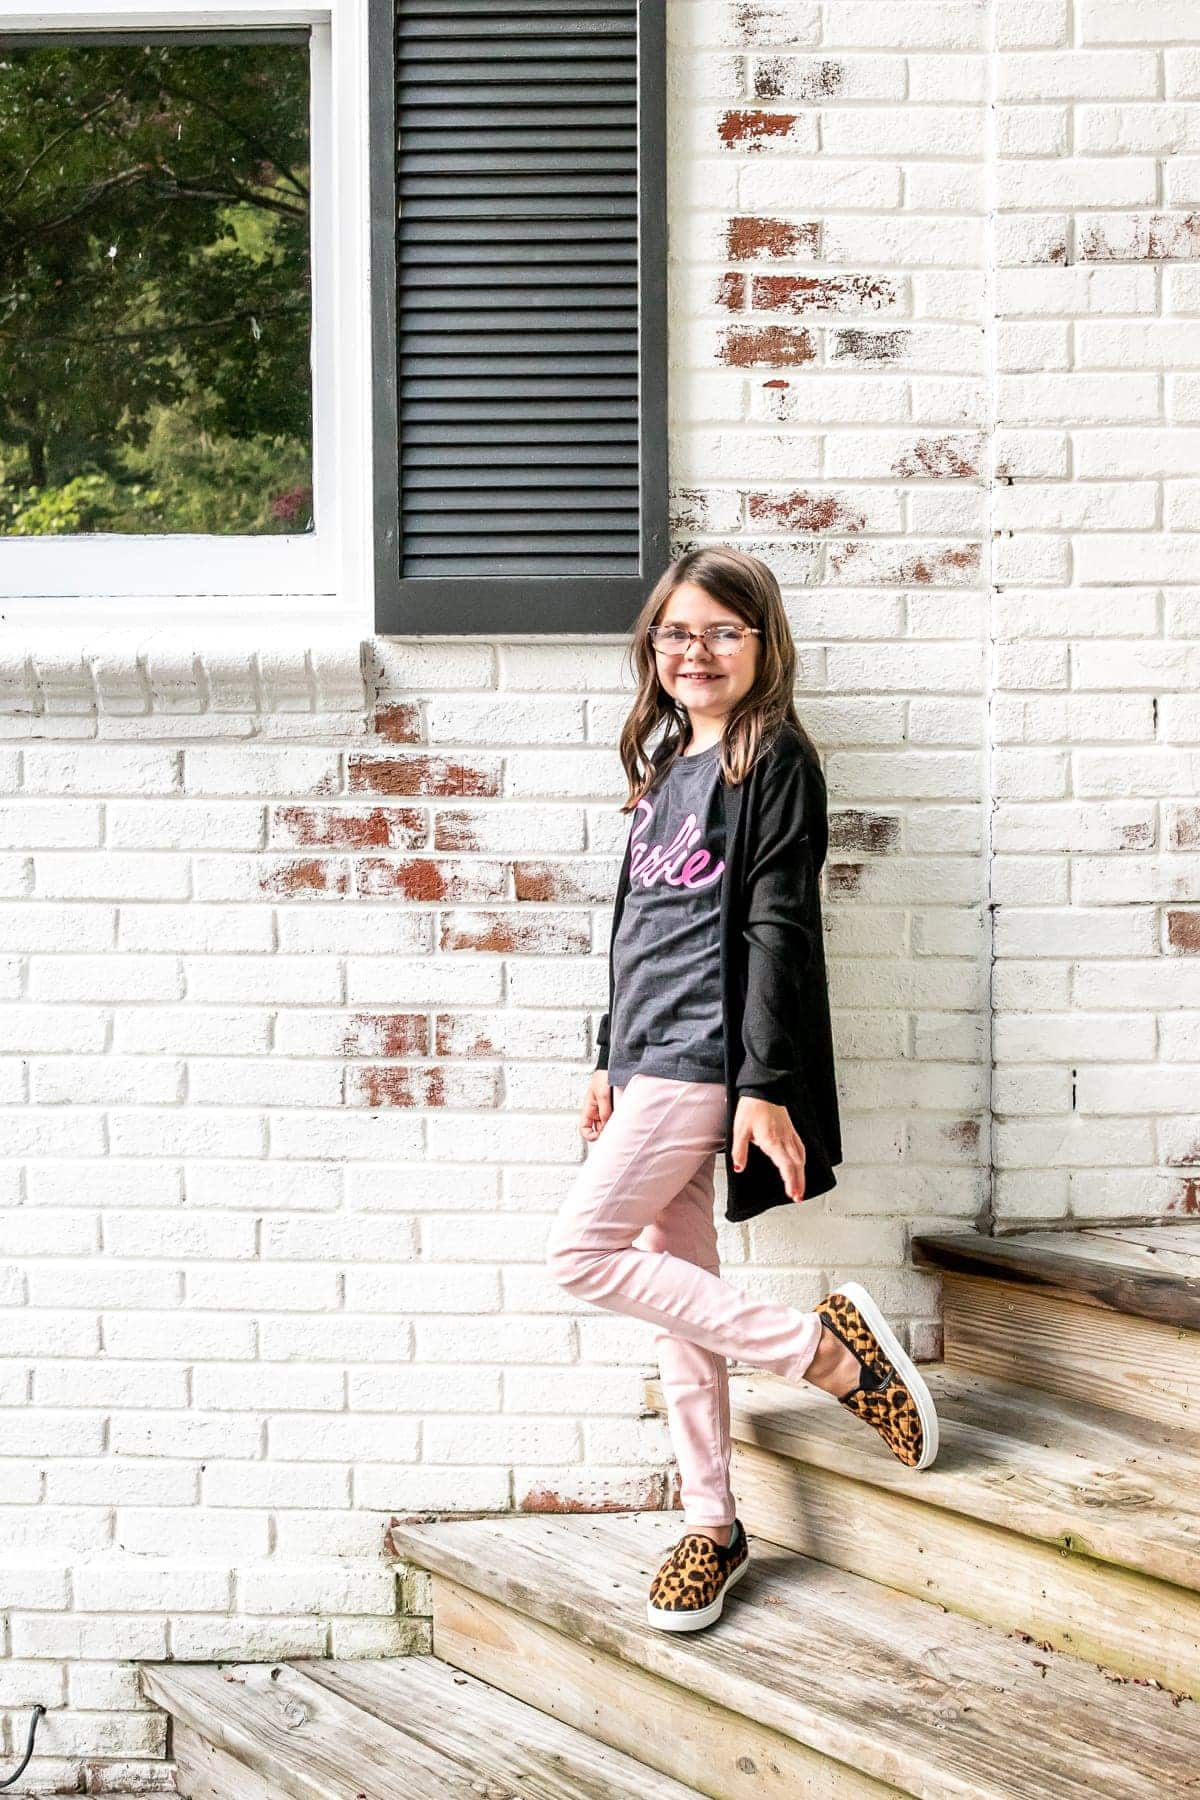 Little Girls' Back to School Clothes from Walmart